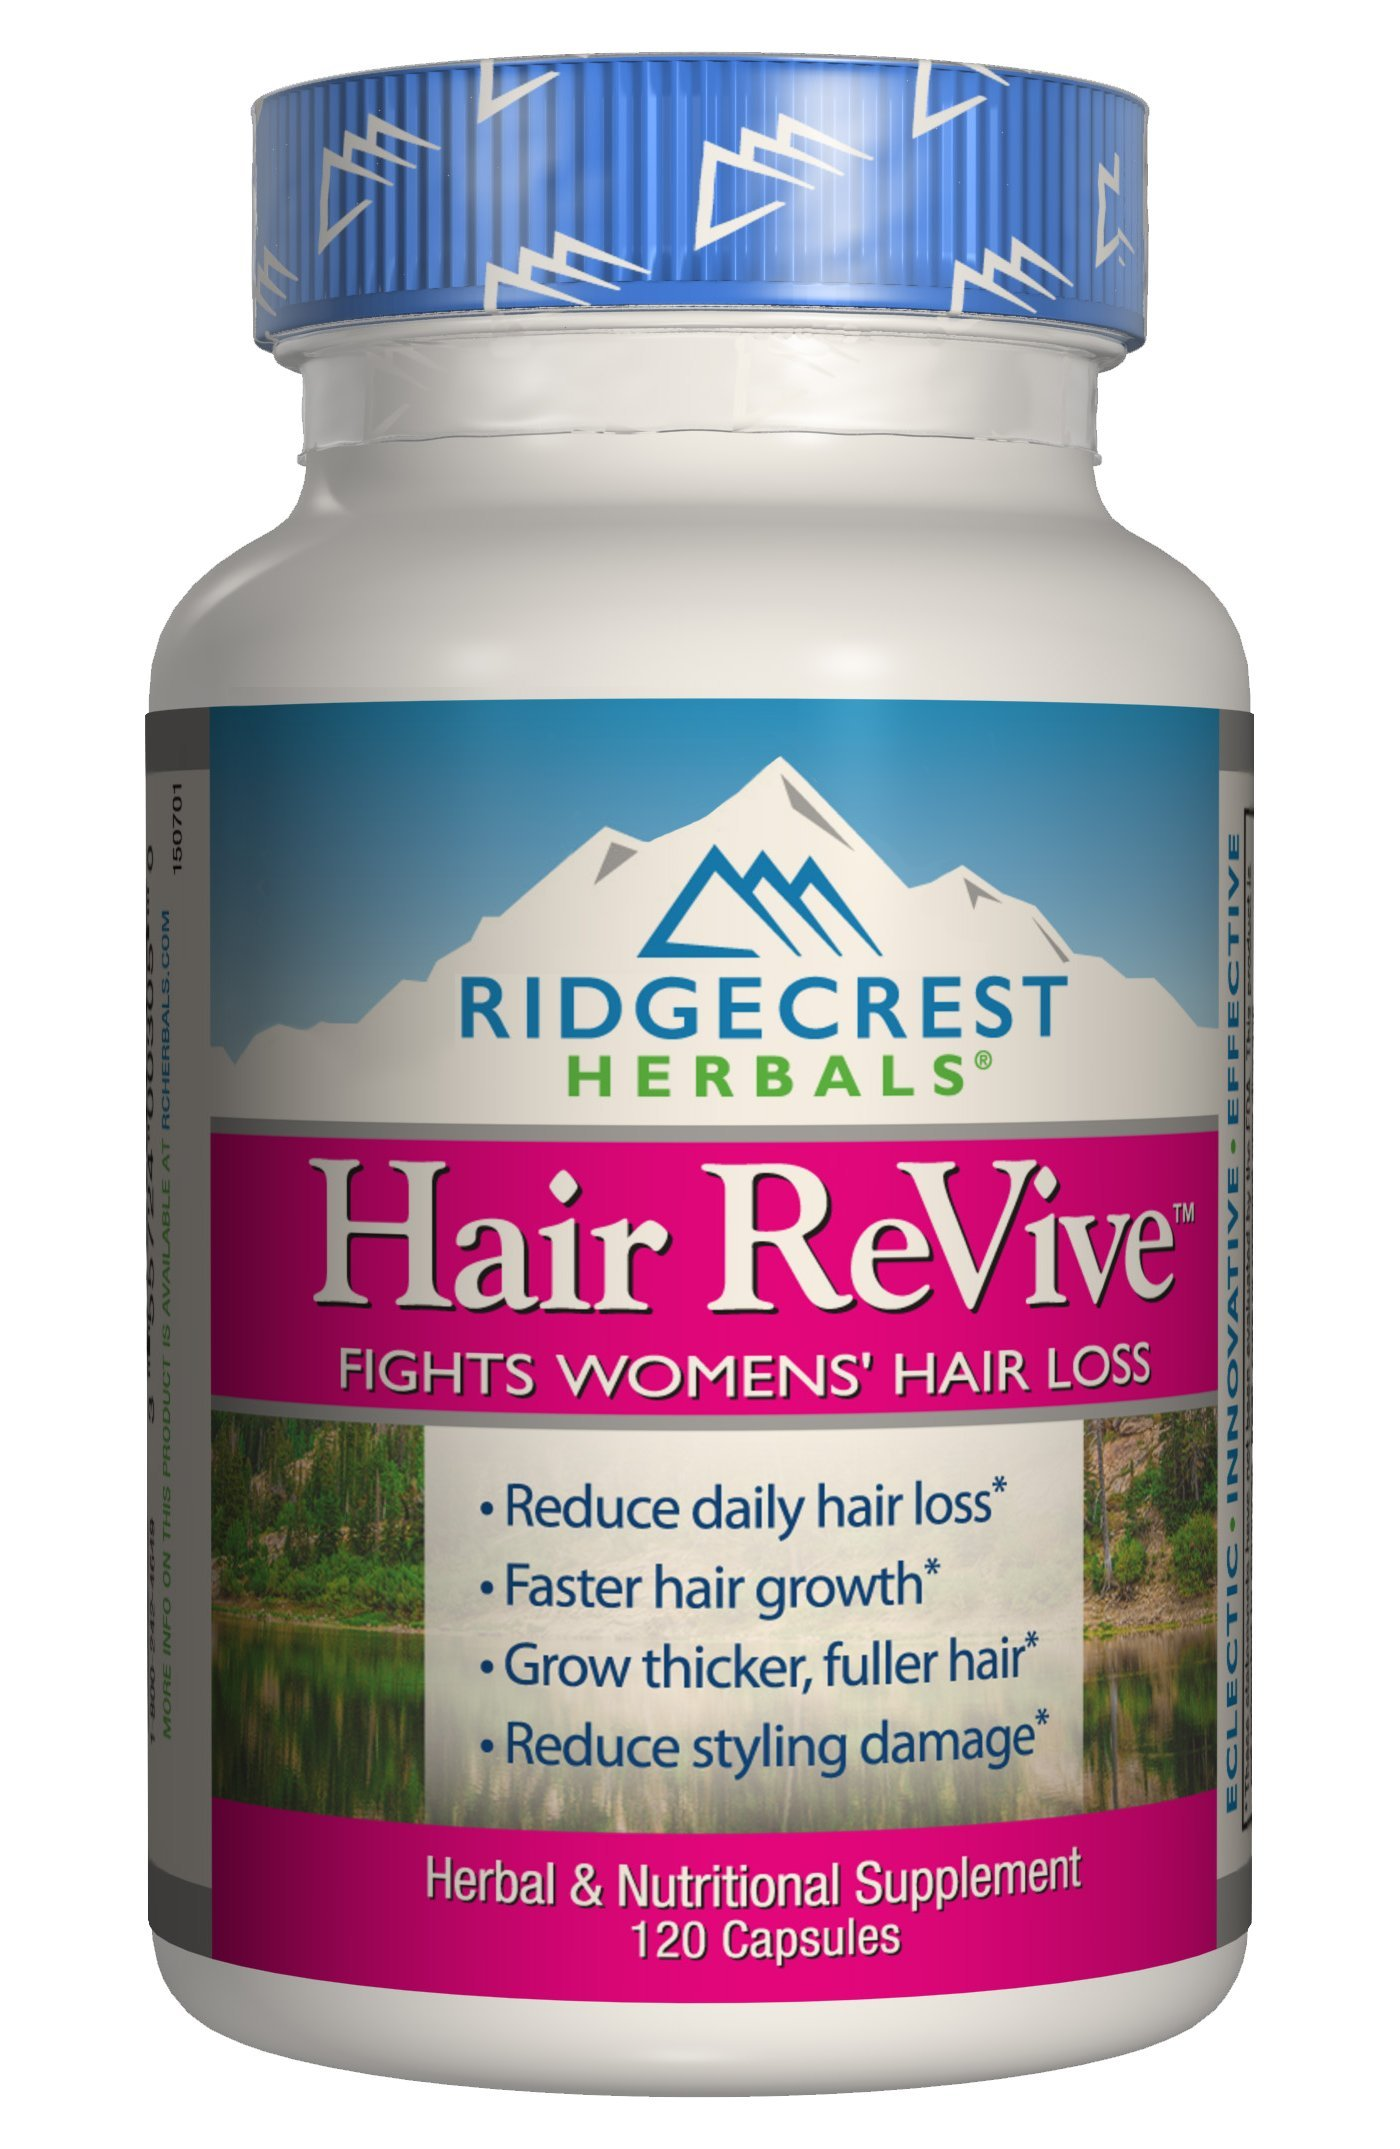 RIDGECREST HERBALS HAIR REVIVE NAT DEFENSE, 120 CAP